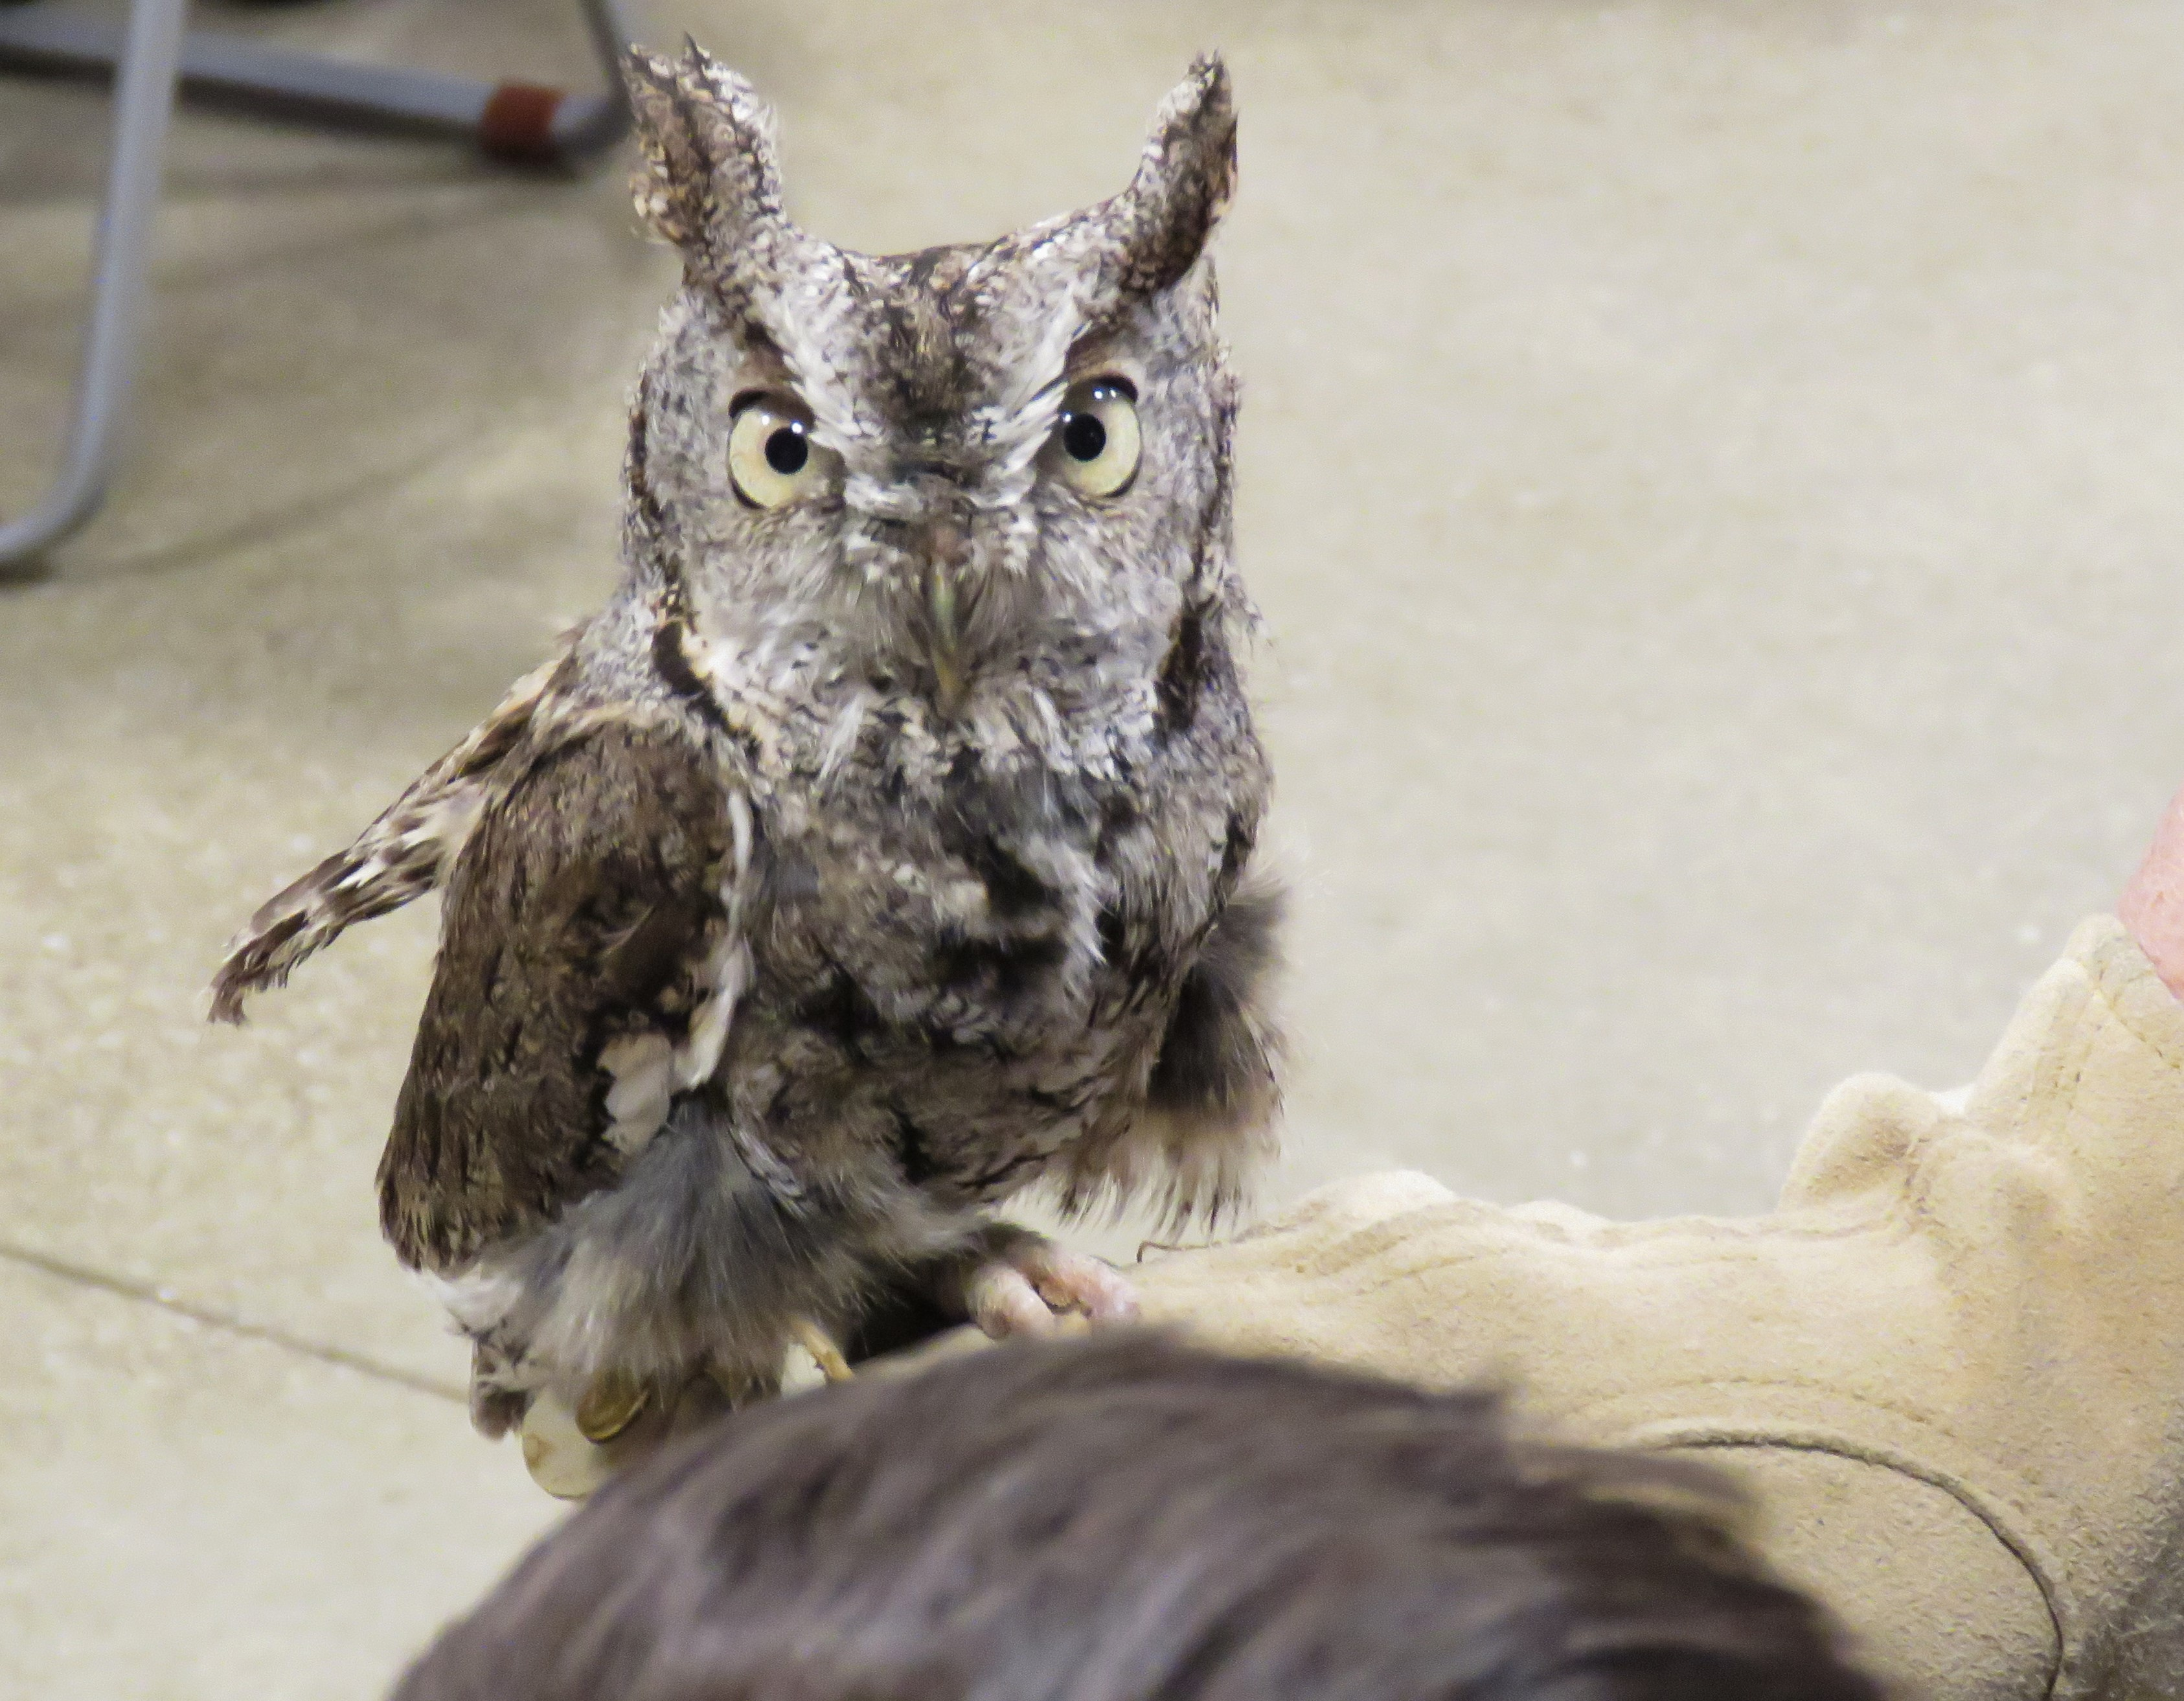 An Eastern Screech-Owl is perched on someone's hand. It is small, with short ear tufts and dark bill. It is gray overall with dark vertical streaks and fine dark barring. It has large yellow eyes.